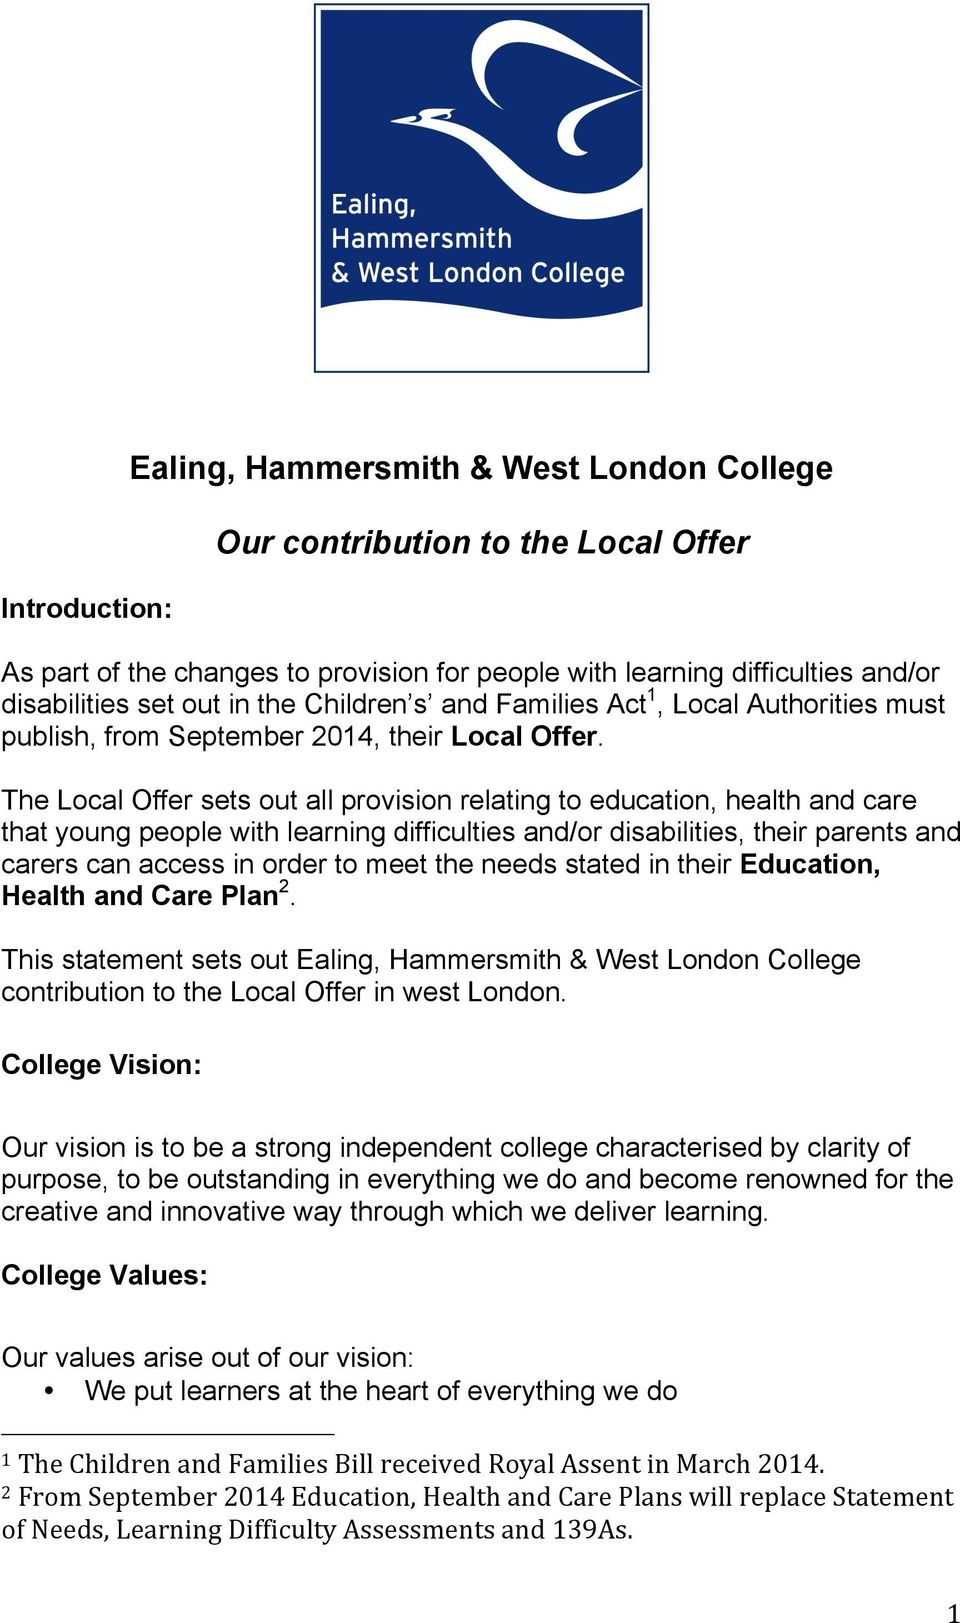 The Local Offer sets out all provision relating to education, health and care that young people with learning difficulties and/or disabilities, their parents and carers can access in order to meet